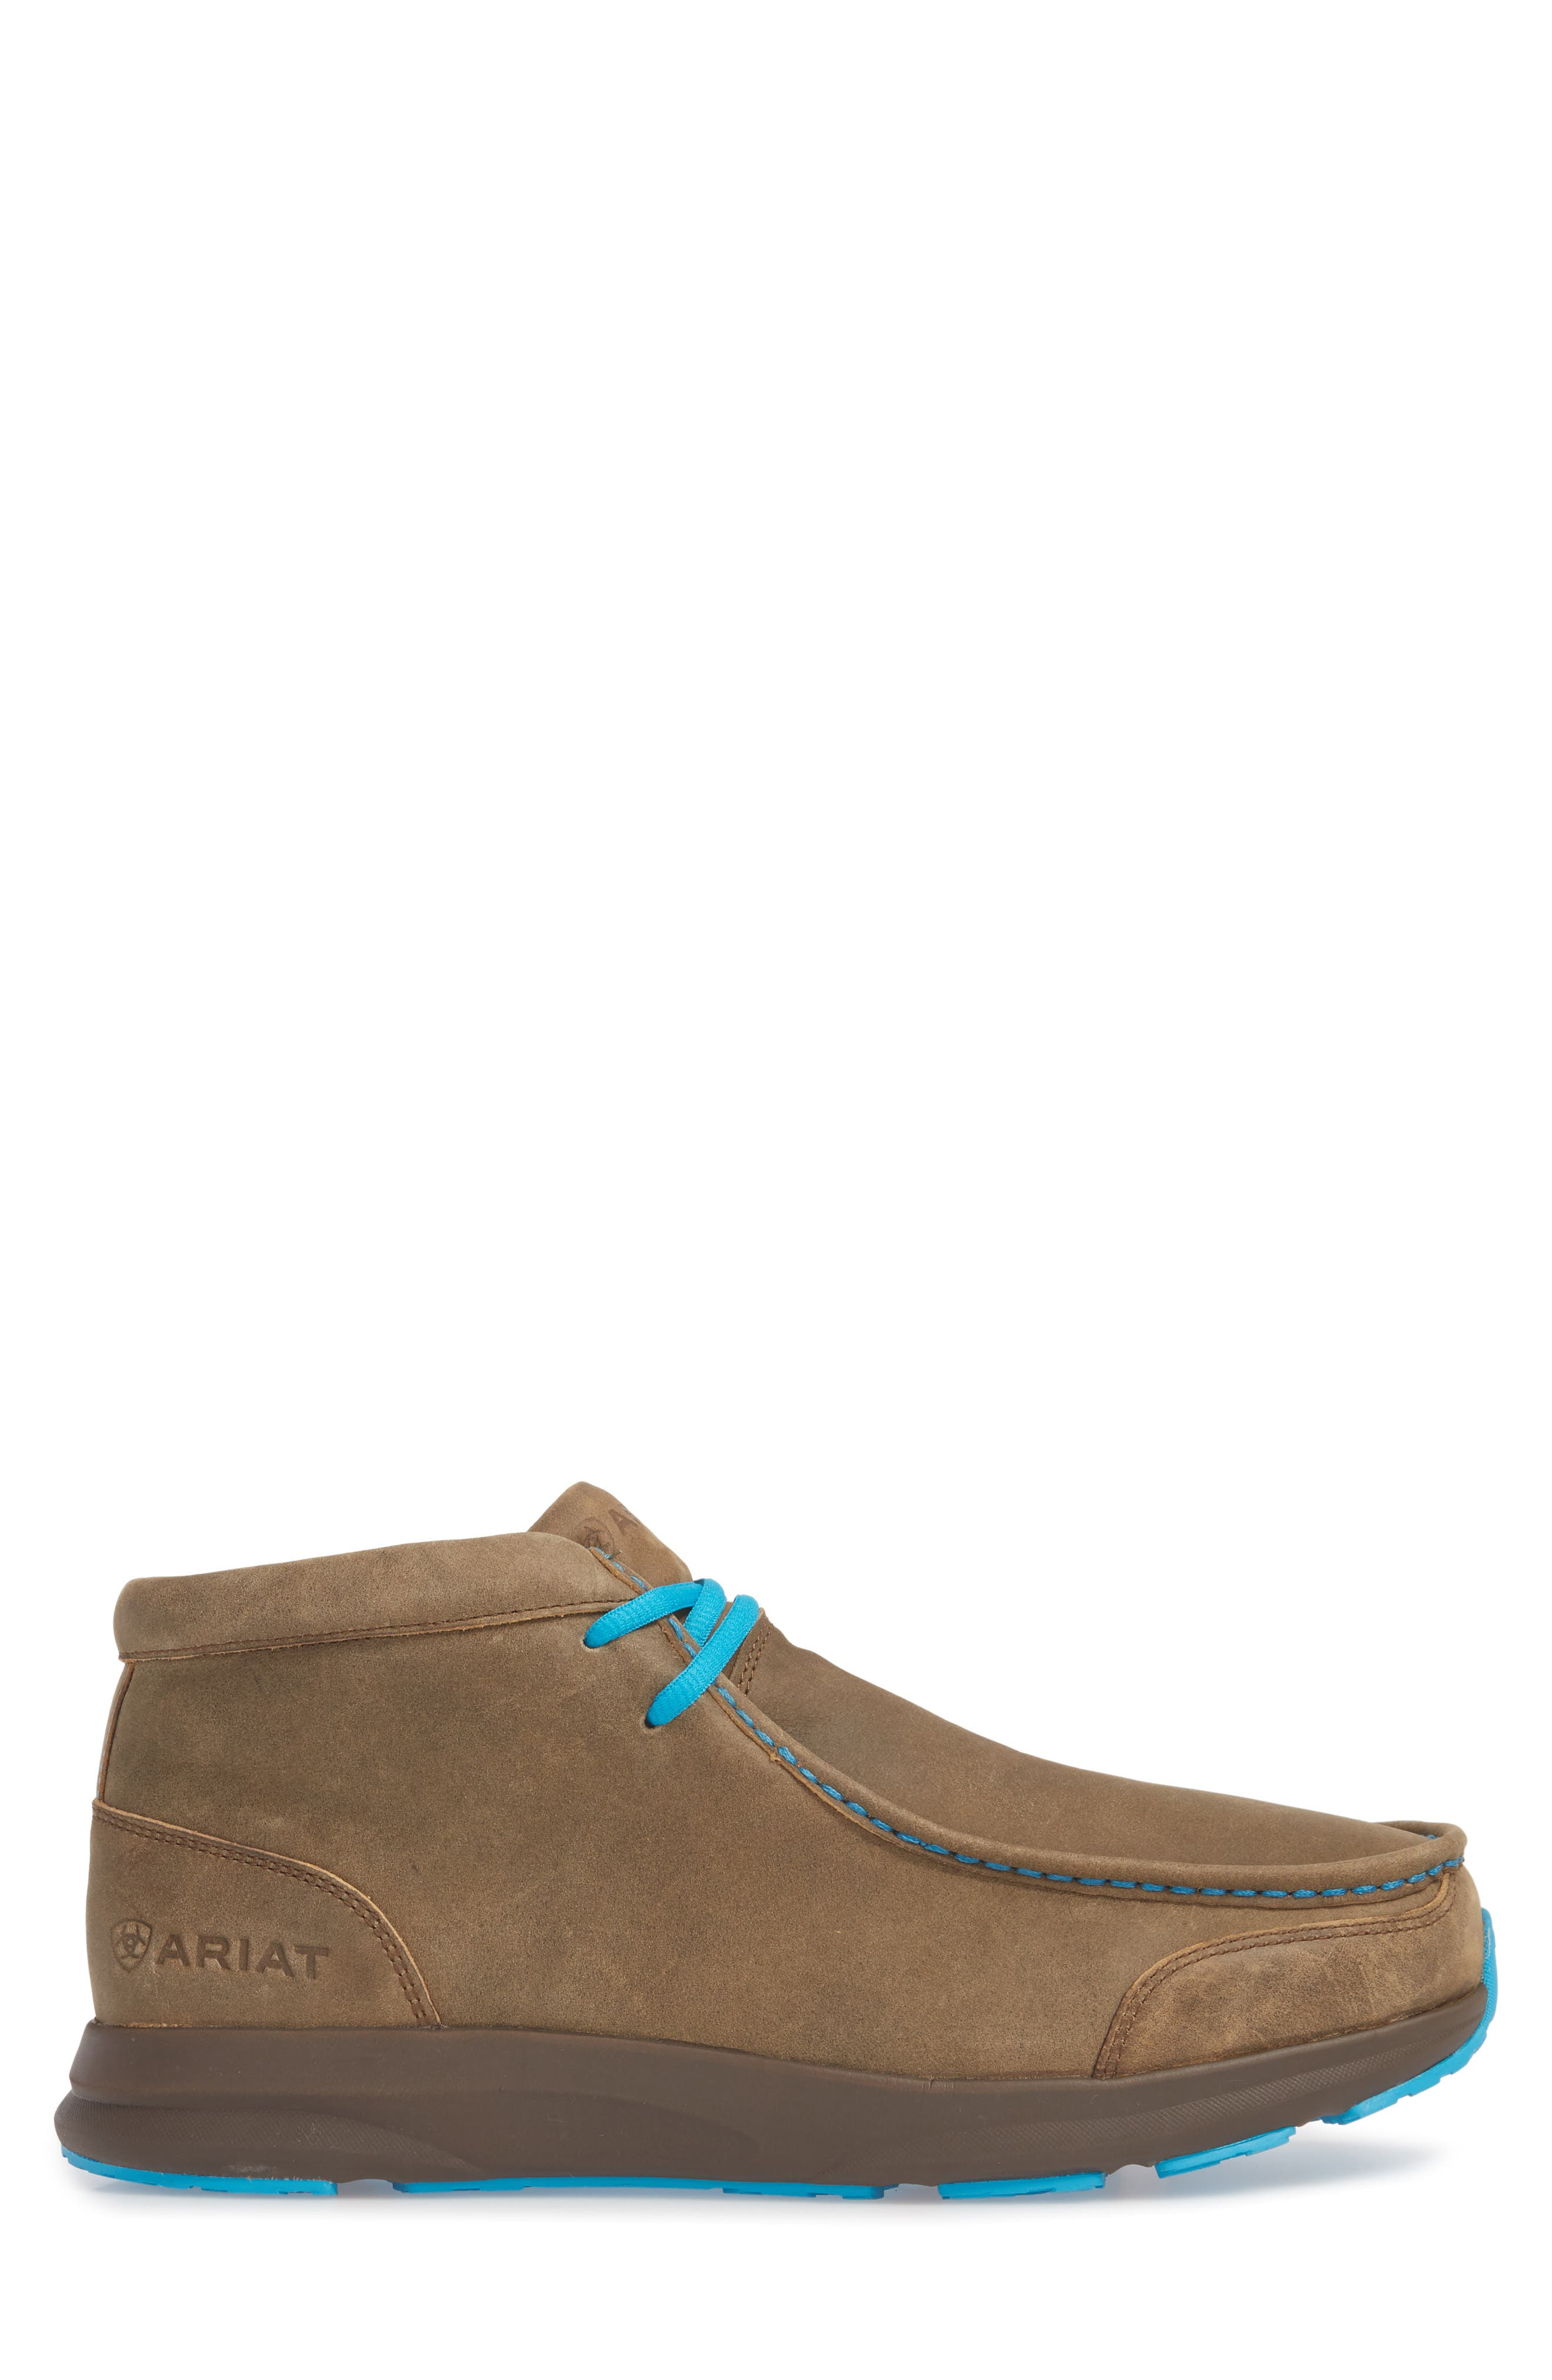 ARIAT, Spitfire Chukka Boot, Alternate thumbnail 3, color, BROWN BOMBER/ BLUE LEATHER